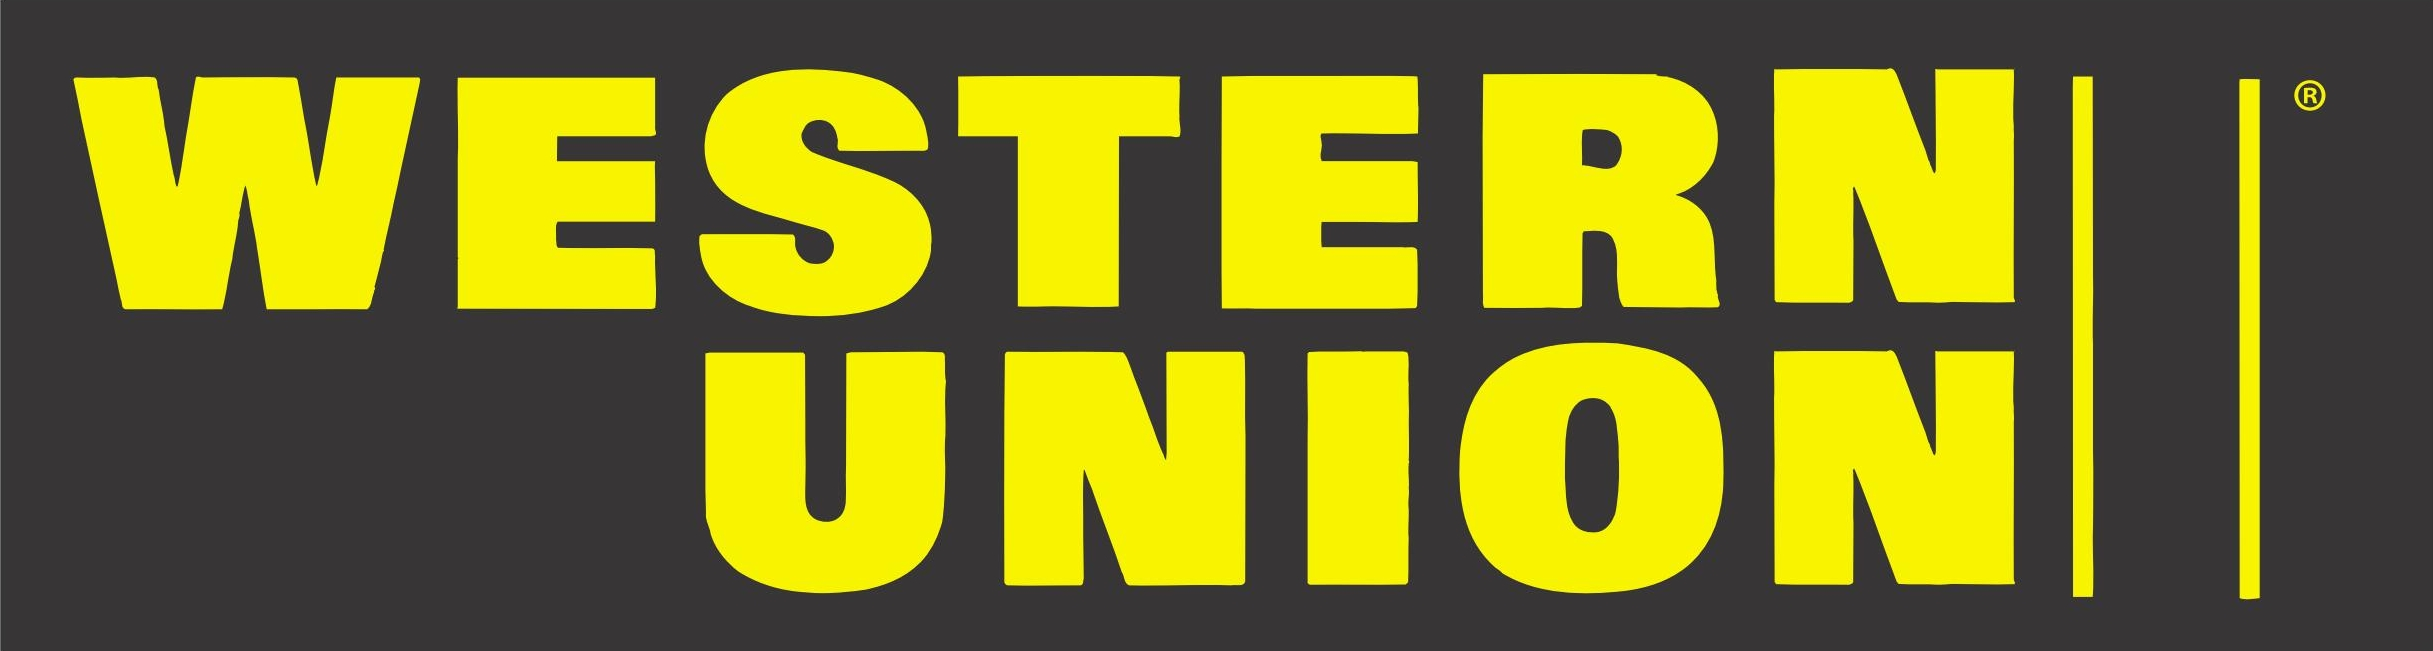 Western union clipart logo picture transparent stock Western Union Logo Vector Icon Template Clipart Free Download picture transparent stock